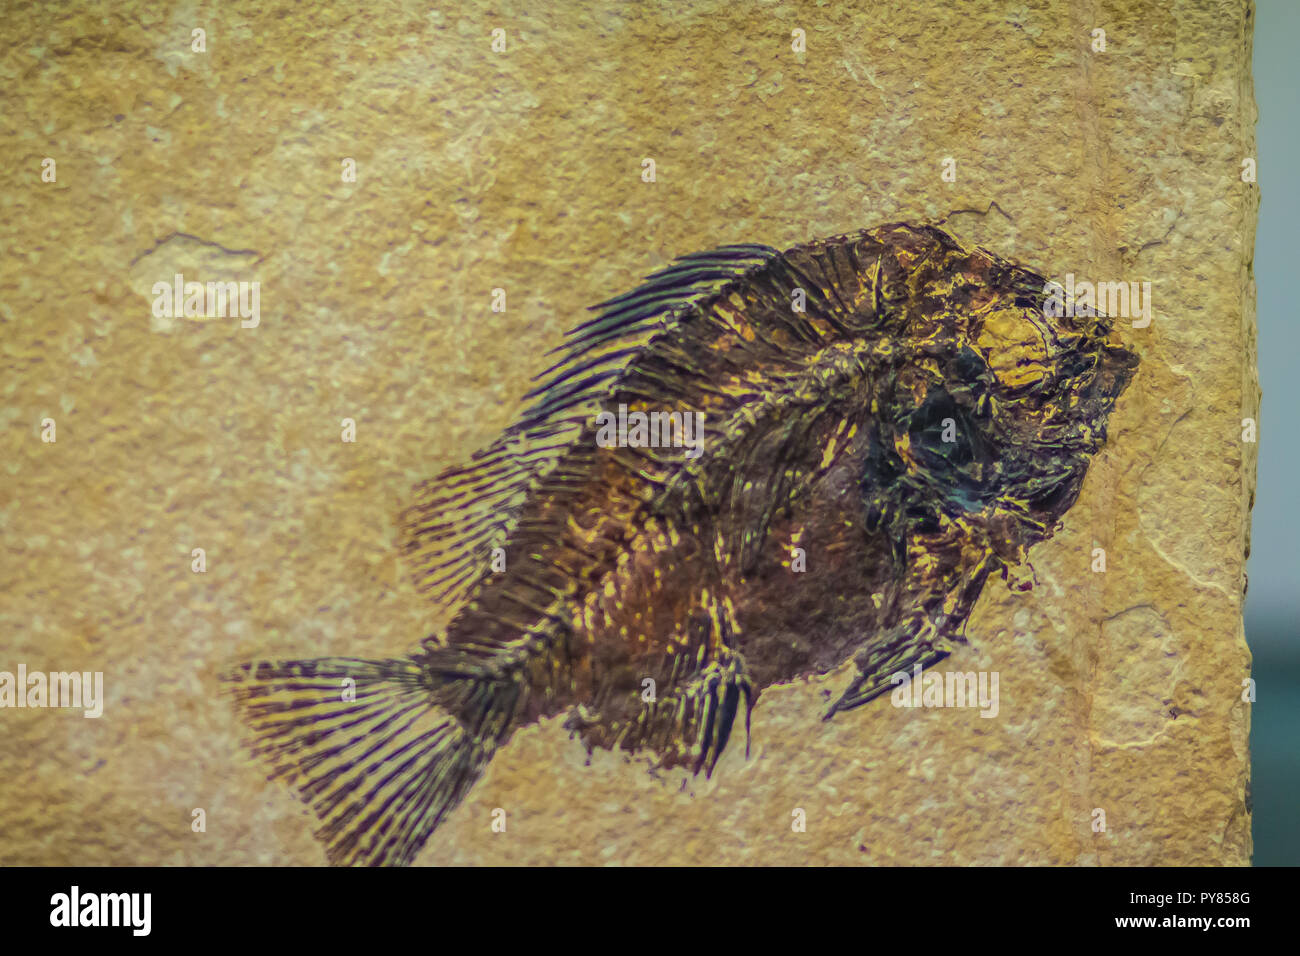 Priscacara fossil fish for sale. Priscacara is an extinct genus of perch from the middle Eocene. It is characterized by a sunfish-like body and its st - Stock Image